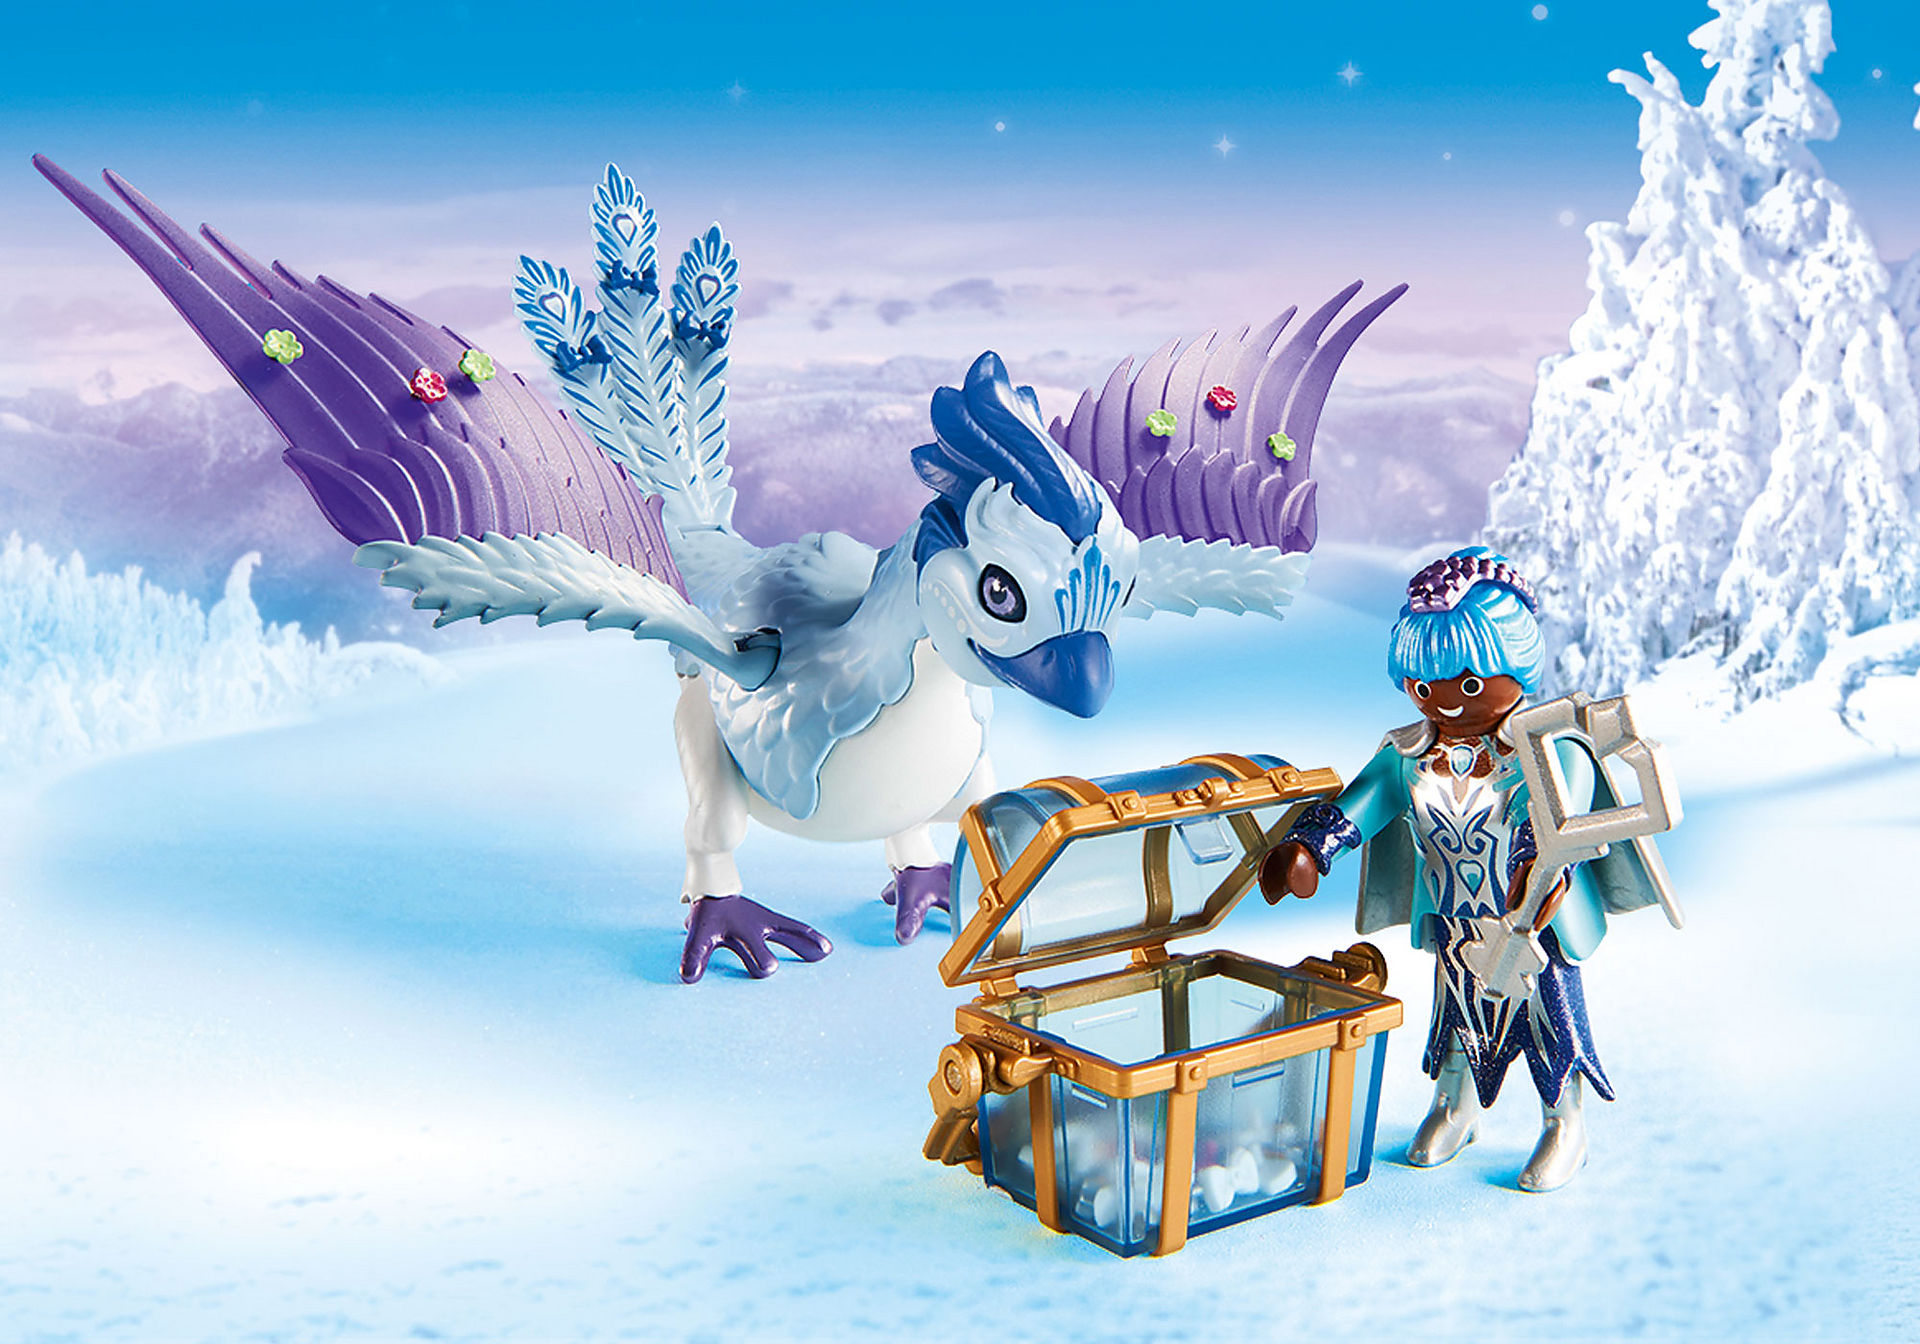 http://media.playmobil.com/i/playmobil/9472_product_extra1/Winter Phoenix